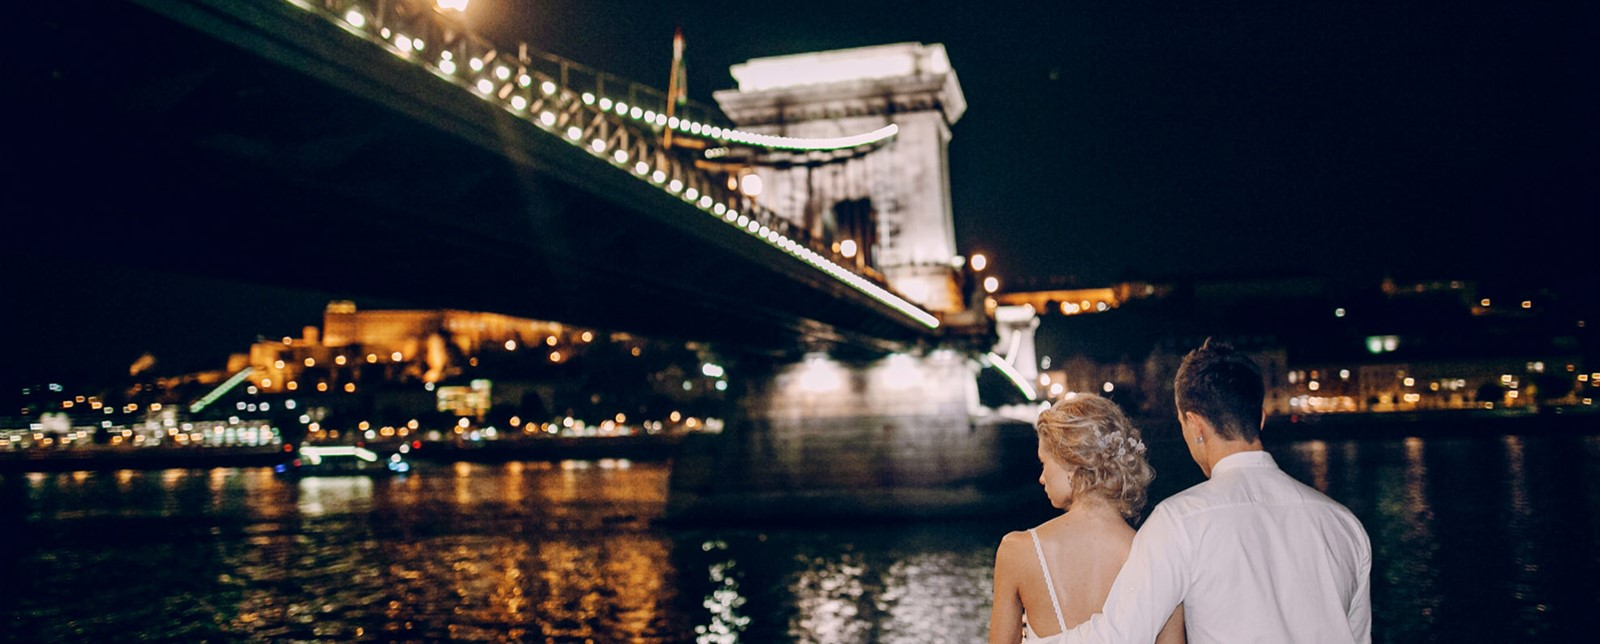 Couple sat by the riverbank in Budapest at night